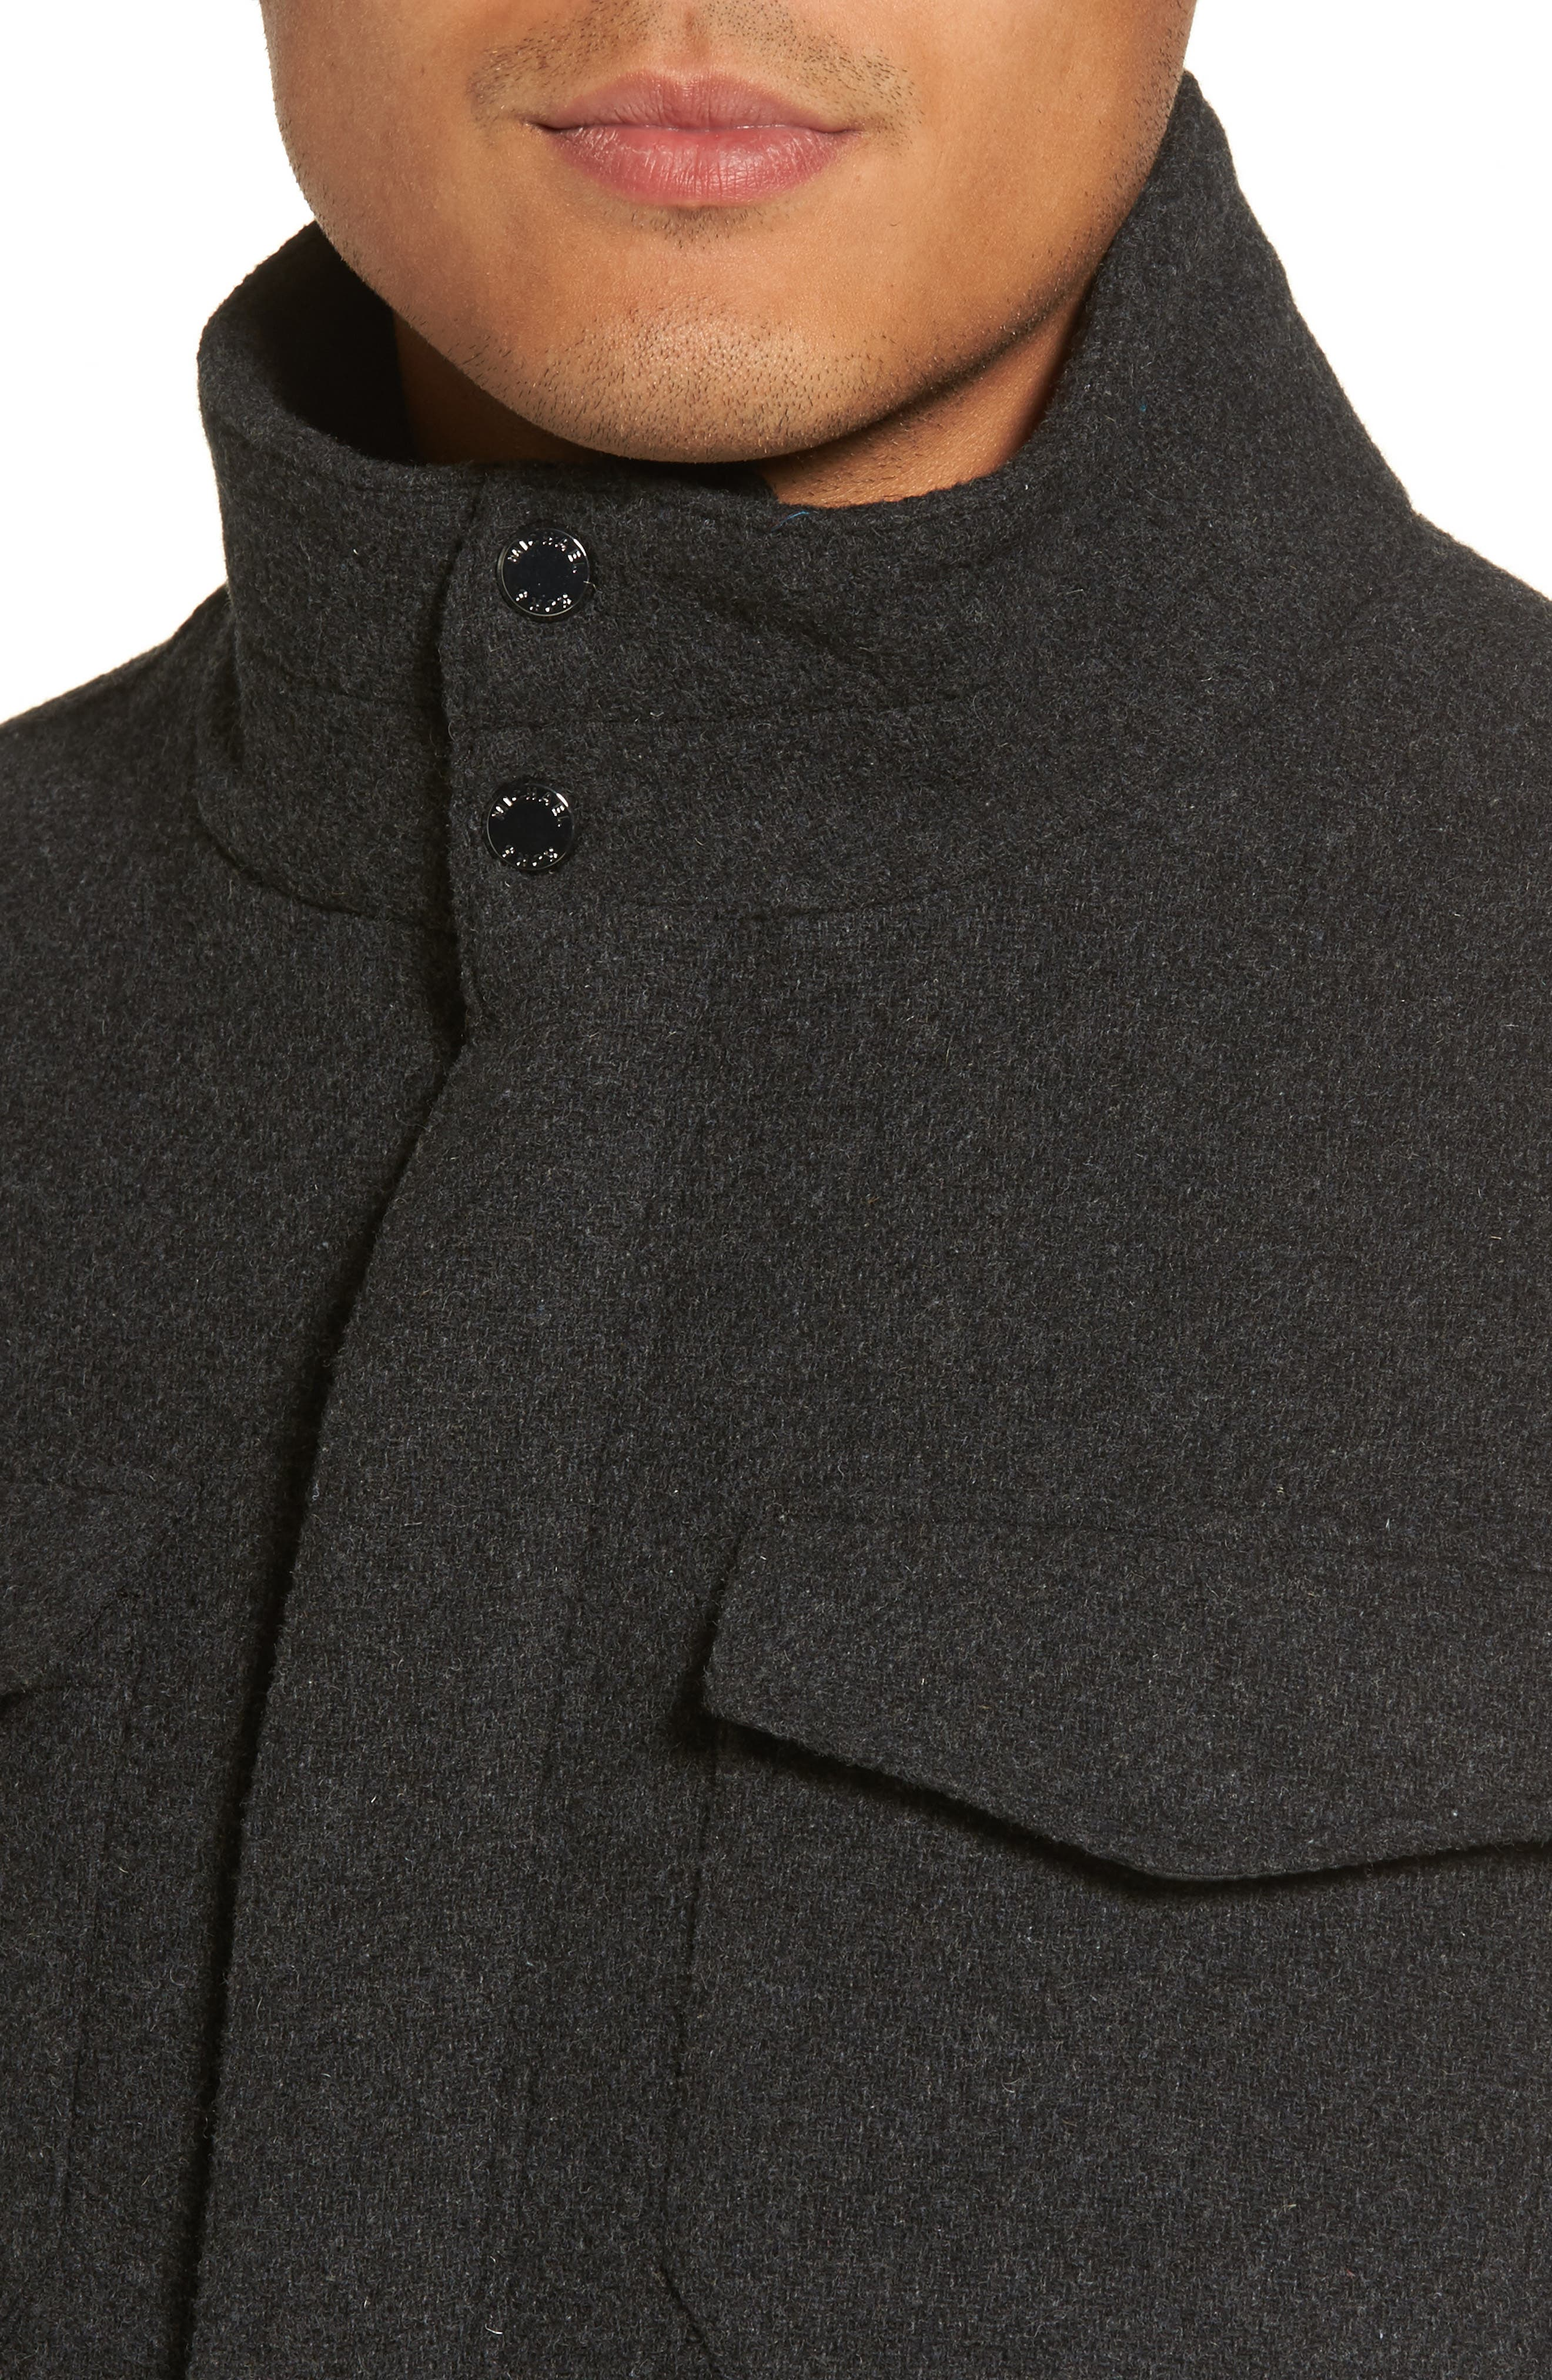 Regular Fit Double Layer Field Jacket,                             Alternate thumbnail 4, color,                             Charcoal/ Black